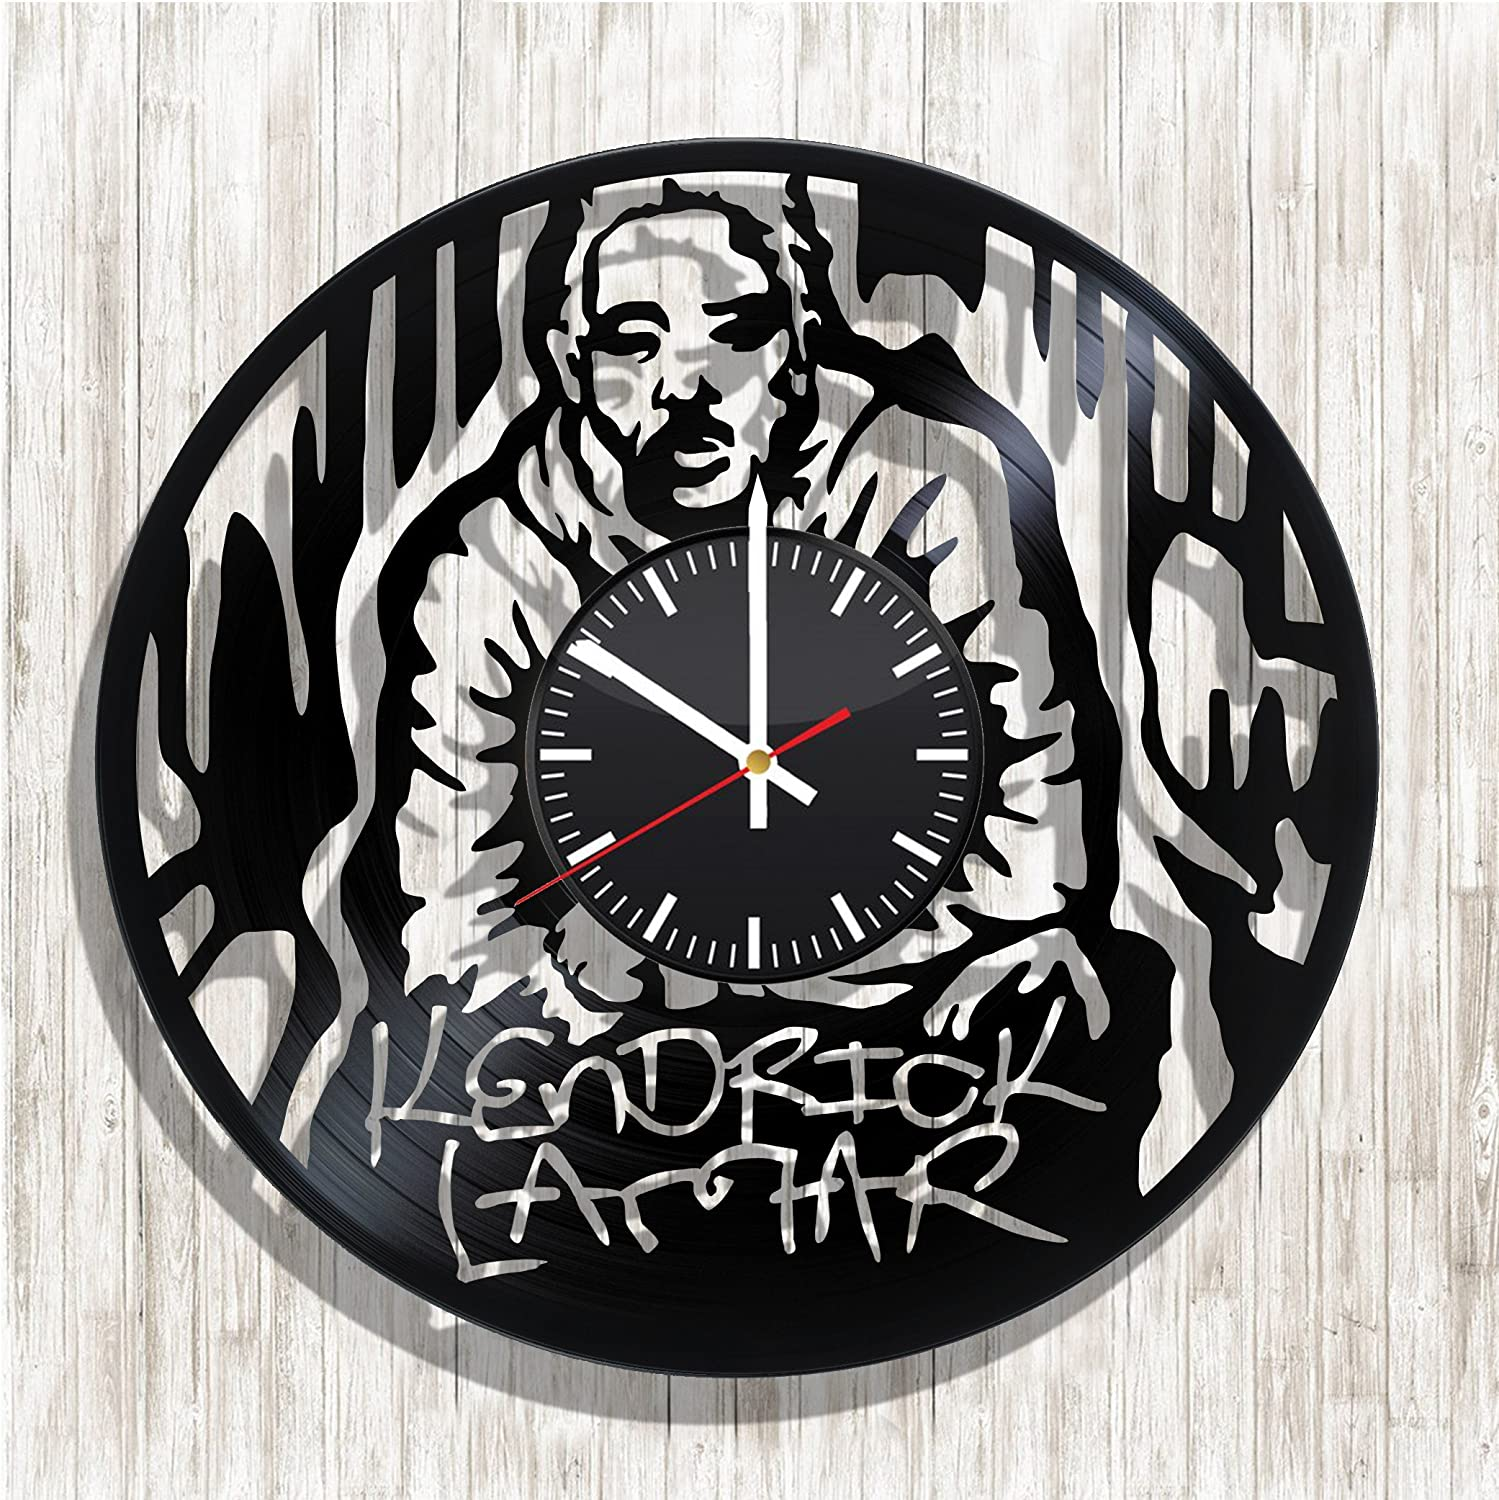 Amazon Com Design Wall Clock Kendrick Lamar Made From Real Vinyl Record Kendrick Lamar Decal Kendrick Lamar Poster Best Gift For Kendrick Lamar Fans Design Art Wall Decor Home Kitchen